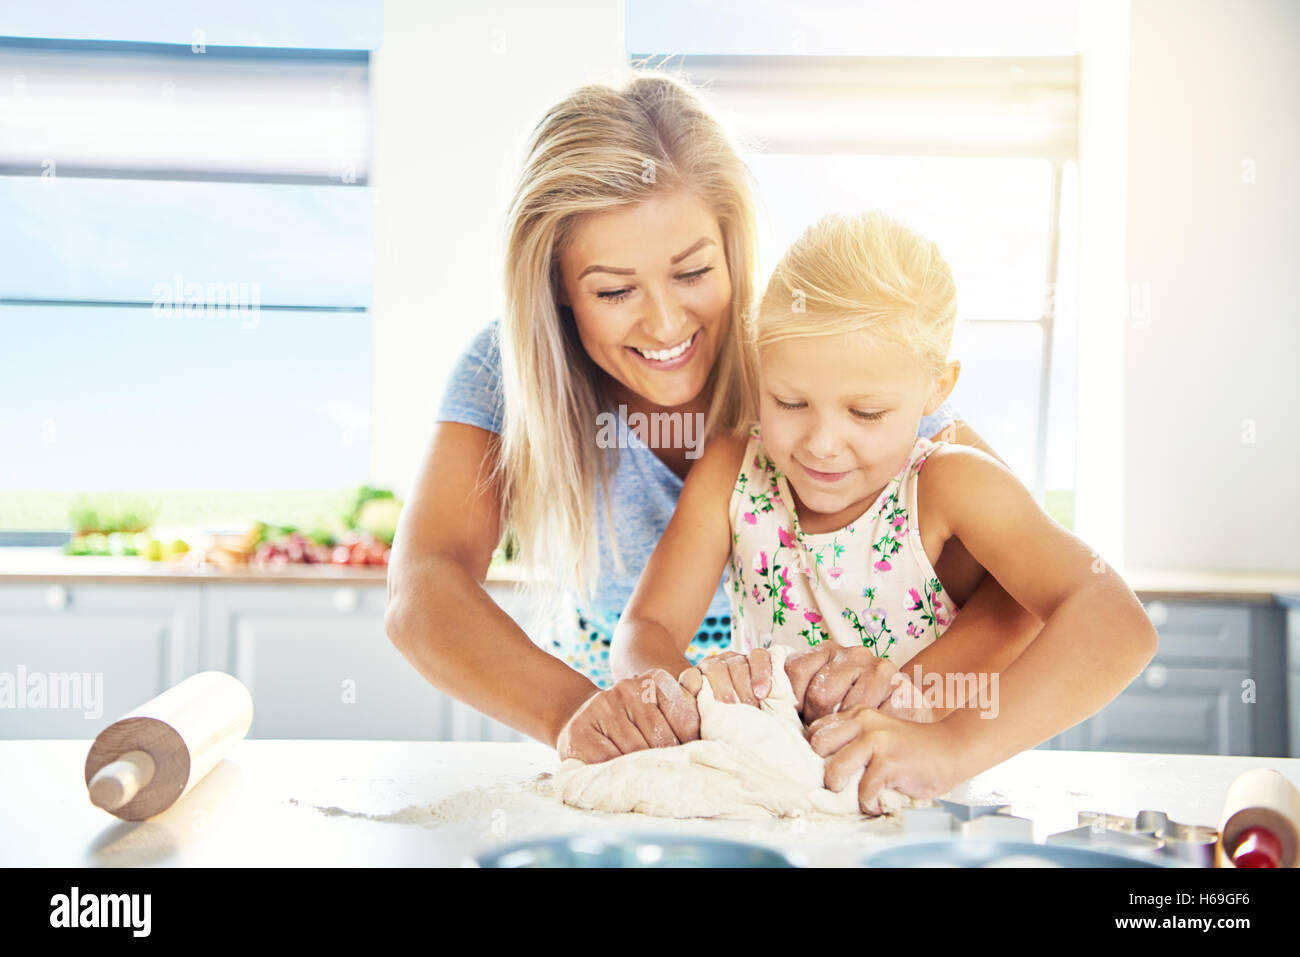 Adoring young mother teaching her daughter to bake as they stand together at the kitchen table kneading the dough - Stock Image